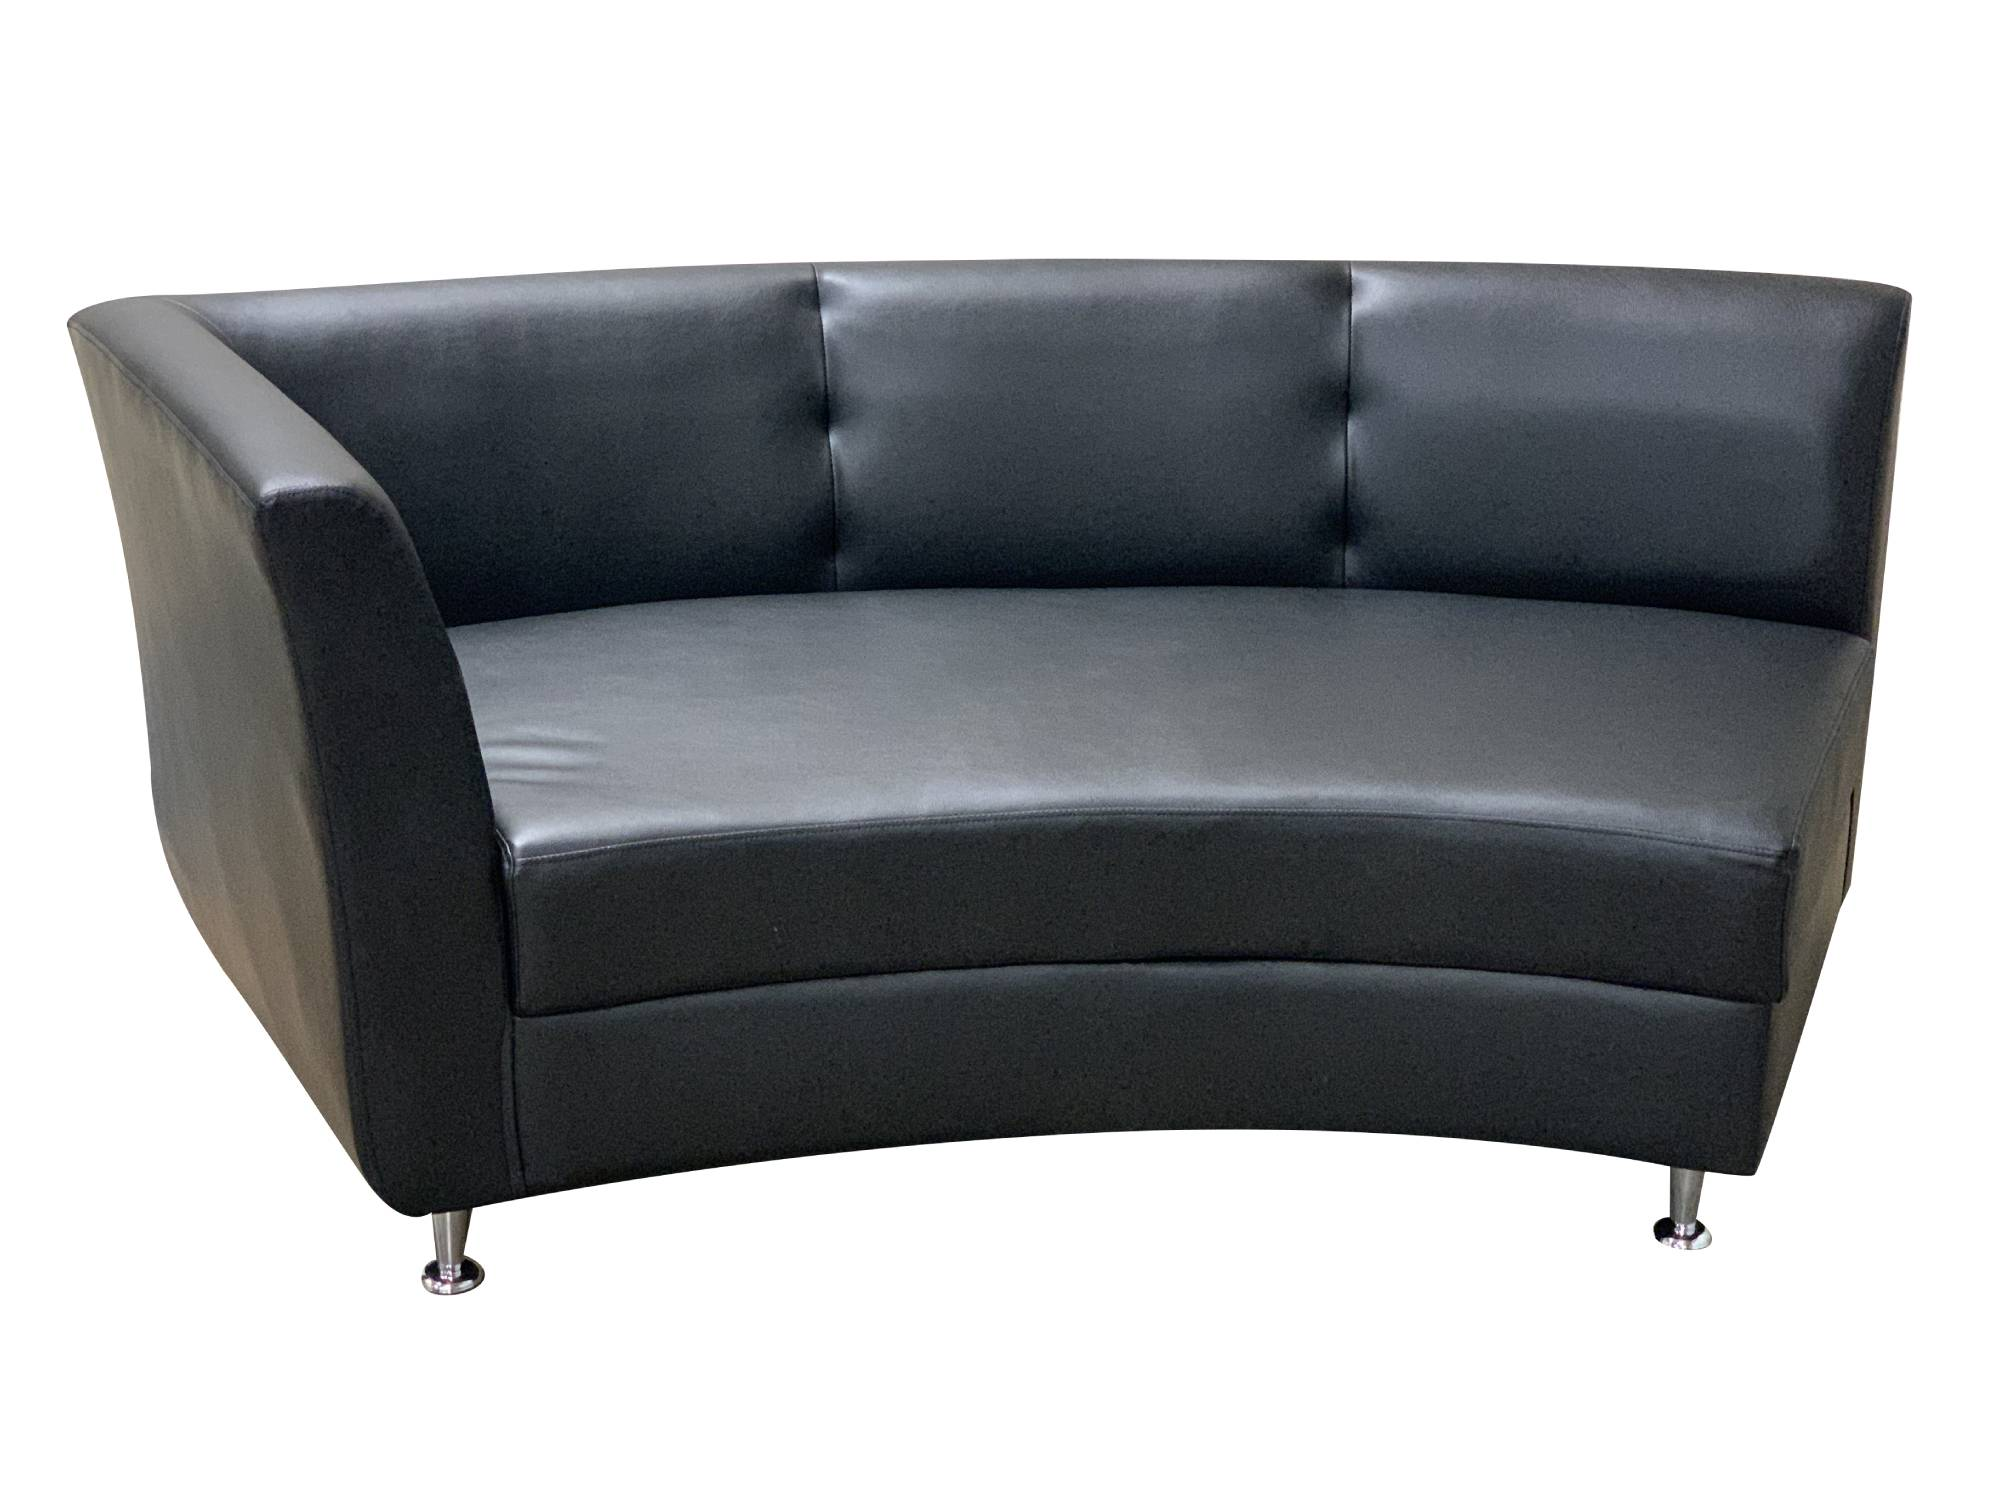 LUXURY RIGHT ARM SOFA SECTION - BLACK